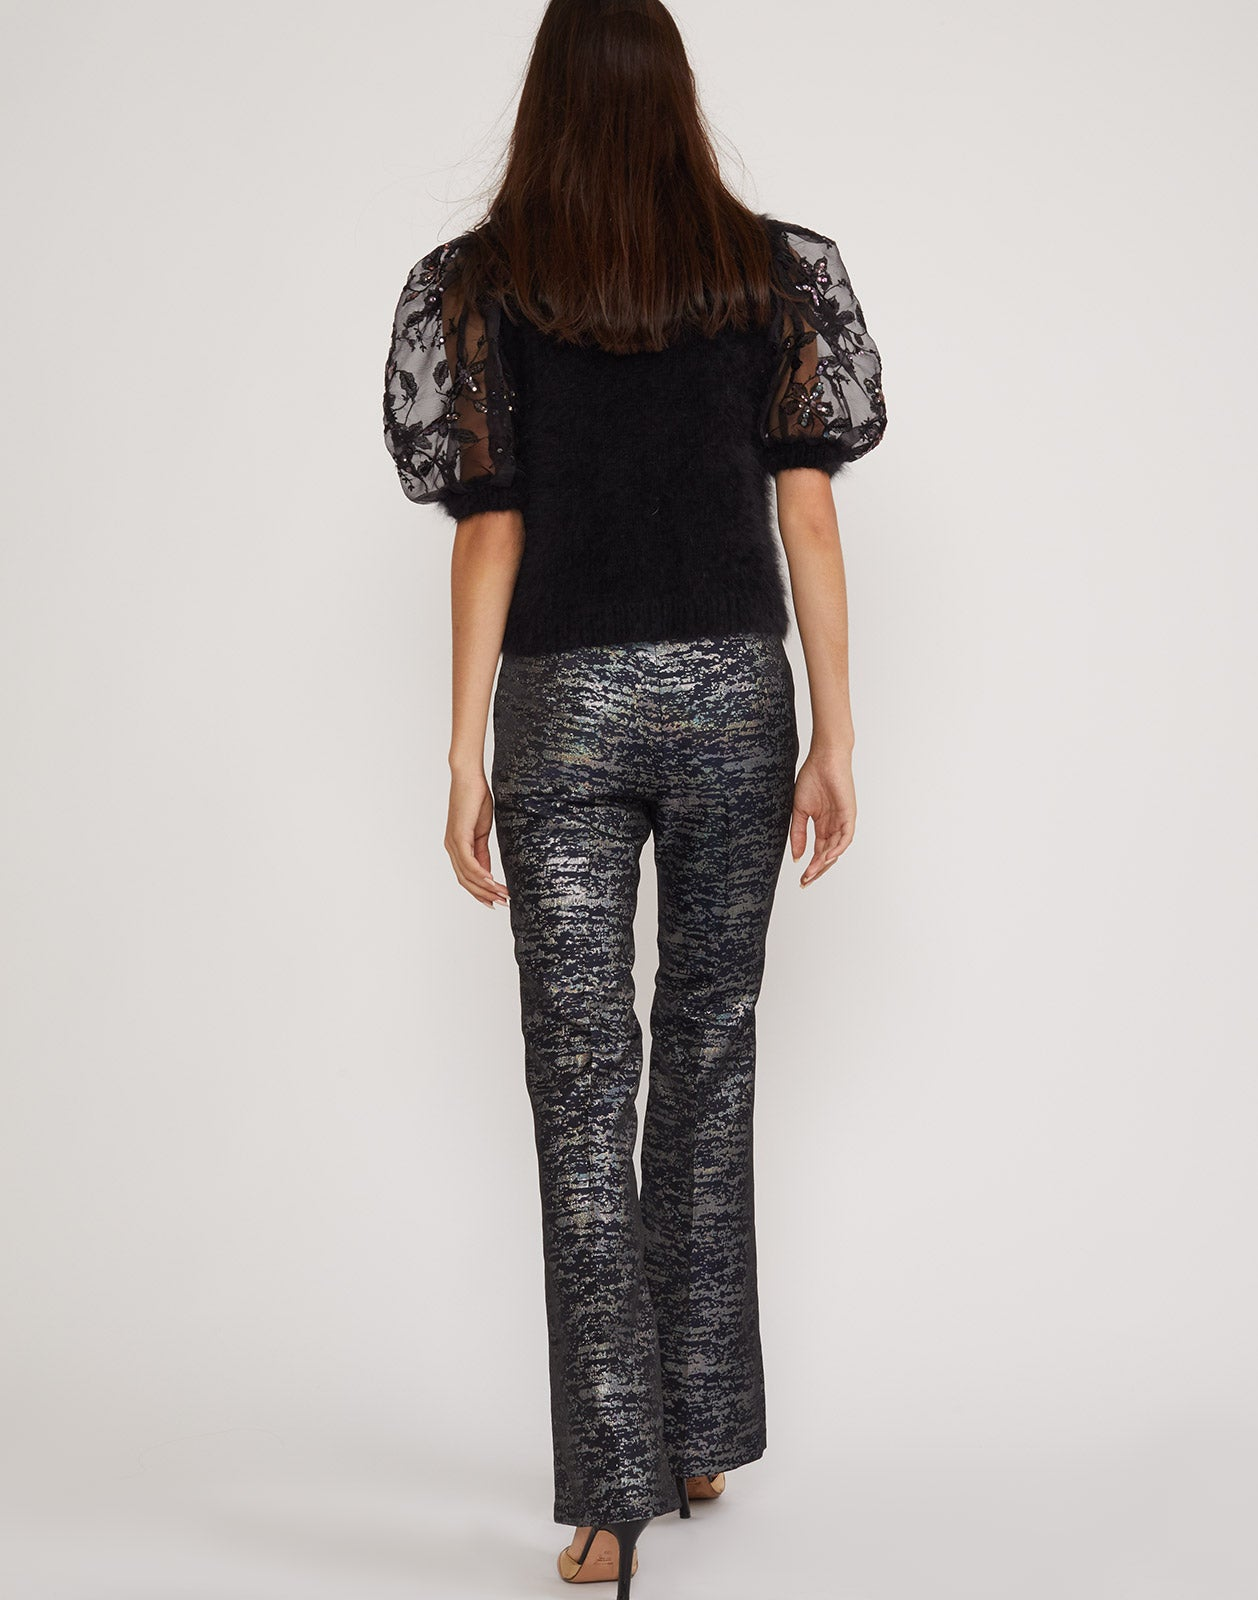 Back view of the Stella metallic brocade flare pant.